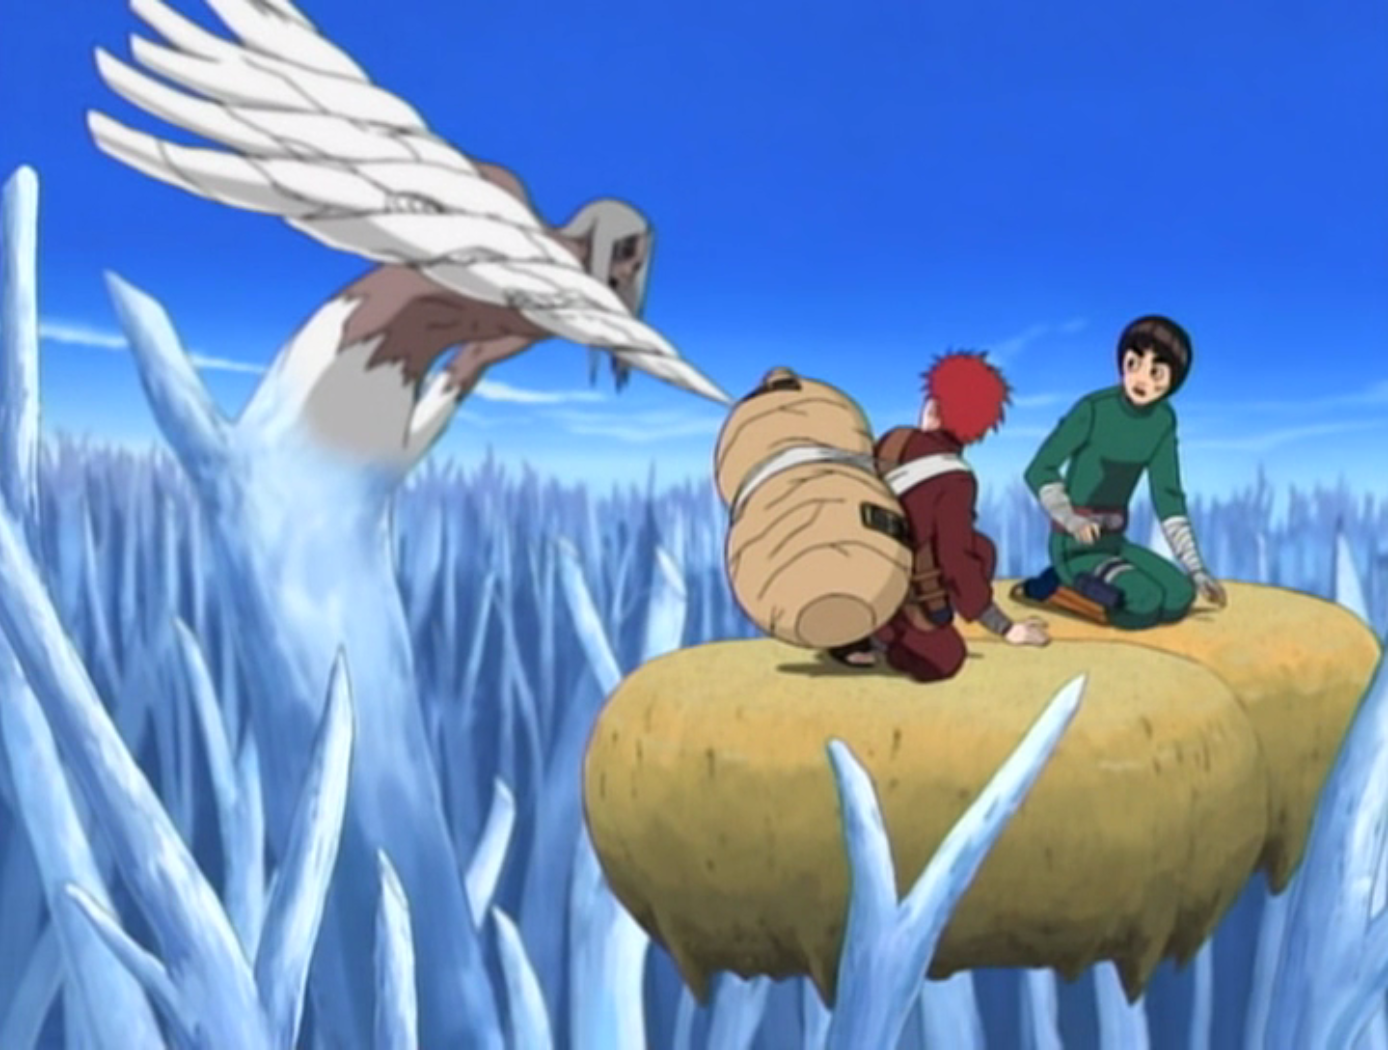 Kimimaro vs Gaara Rock Lee Gaara And Rock Lee Vs Kimimaro